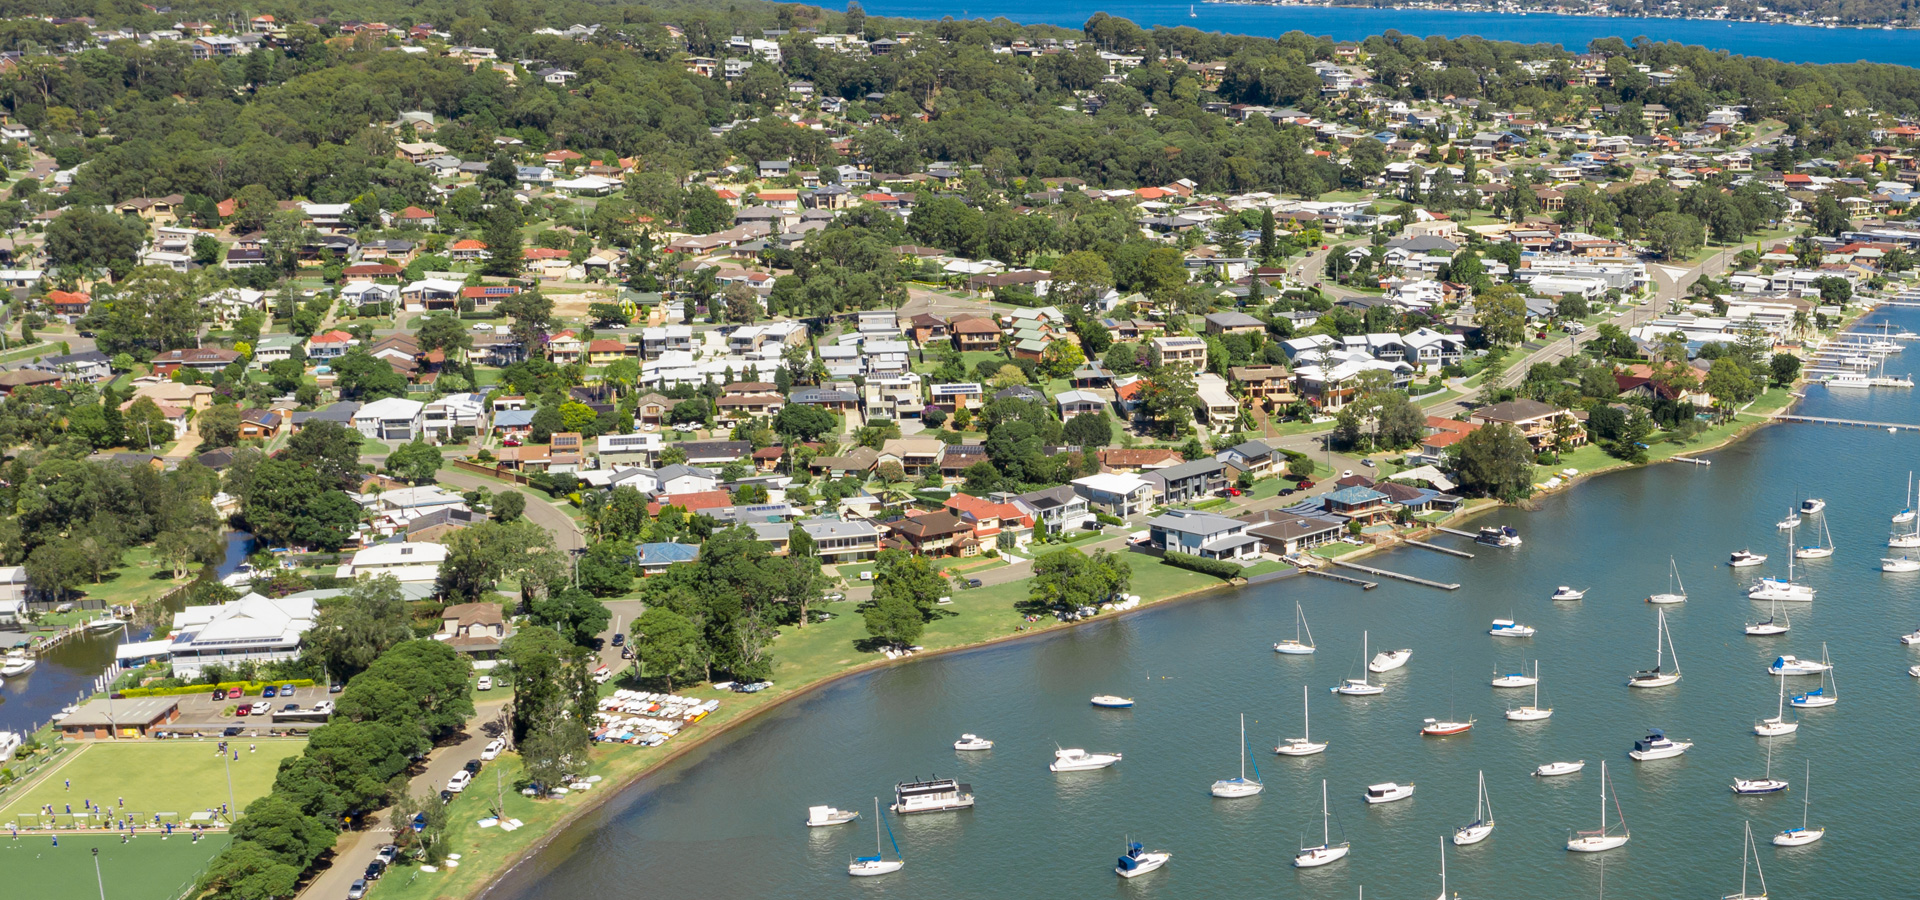 6 Things That Are Affecting Property Prices In Lake Macquarie And Newcastle